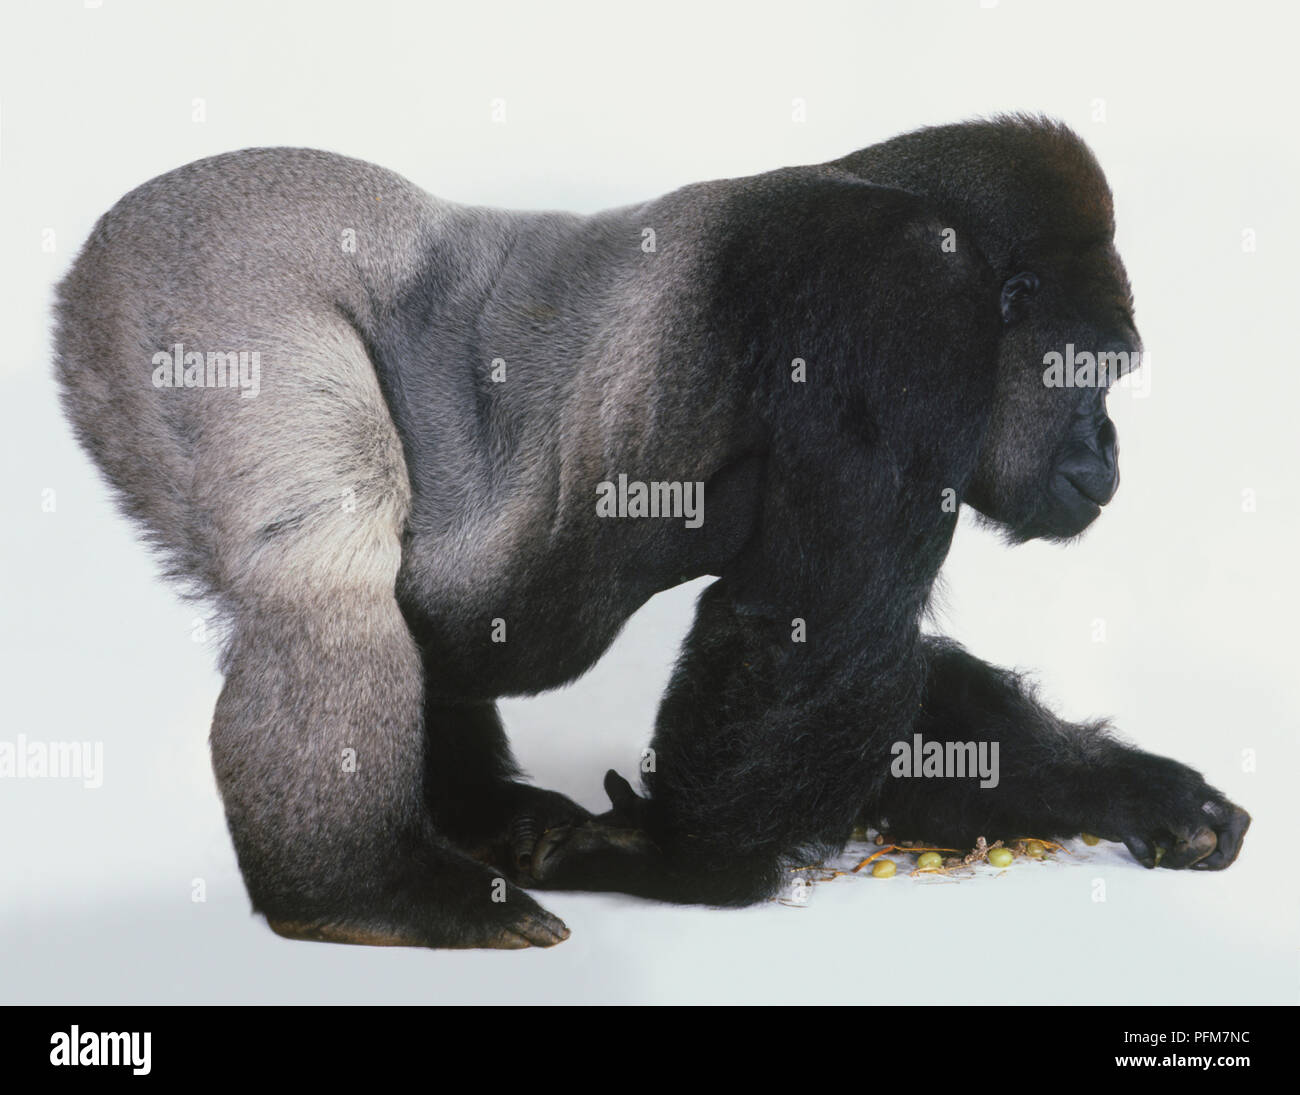 Adult male Lowland Gorilla (Gorilla beringei graueri) on all fours, forearms flat on floor, rump in air, silver hindquarters clearly visible, side view. - Stock Image